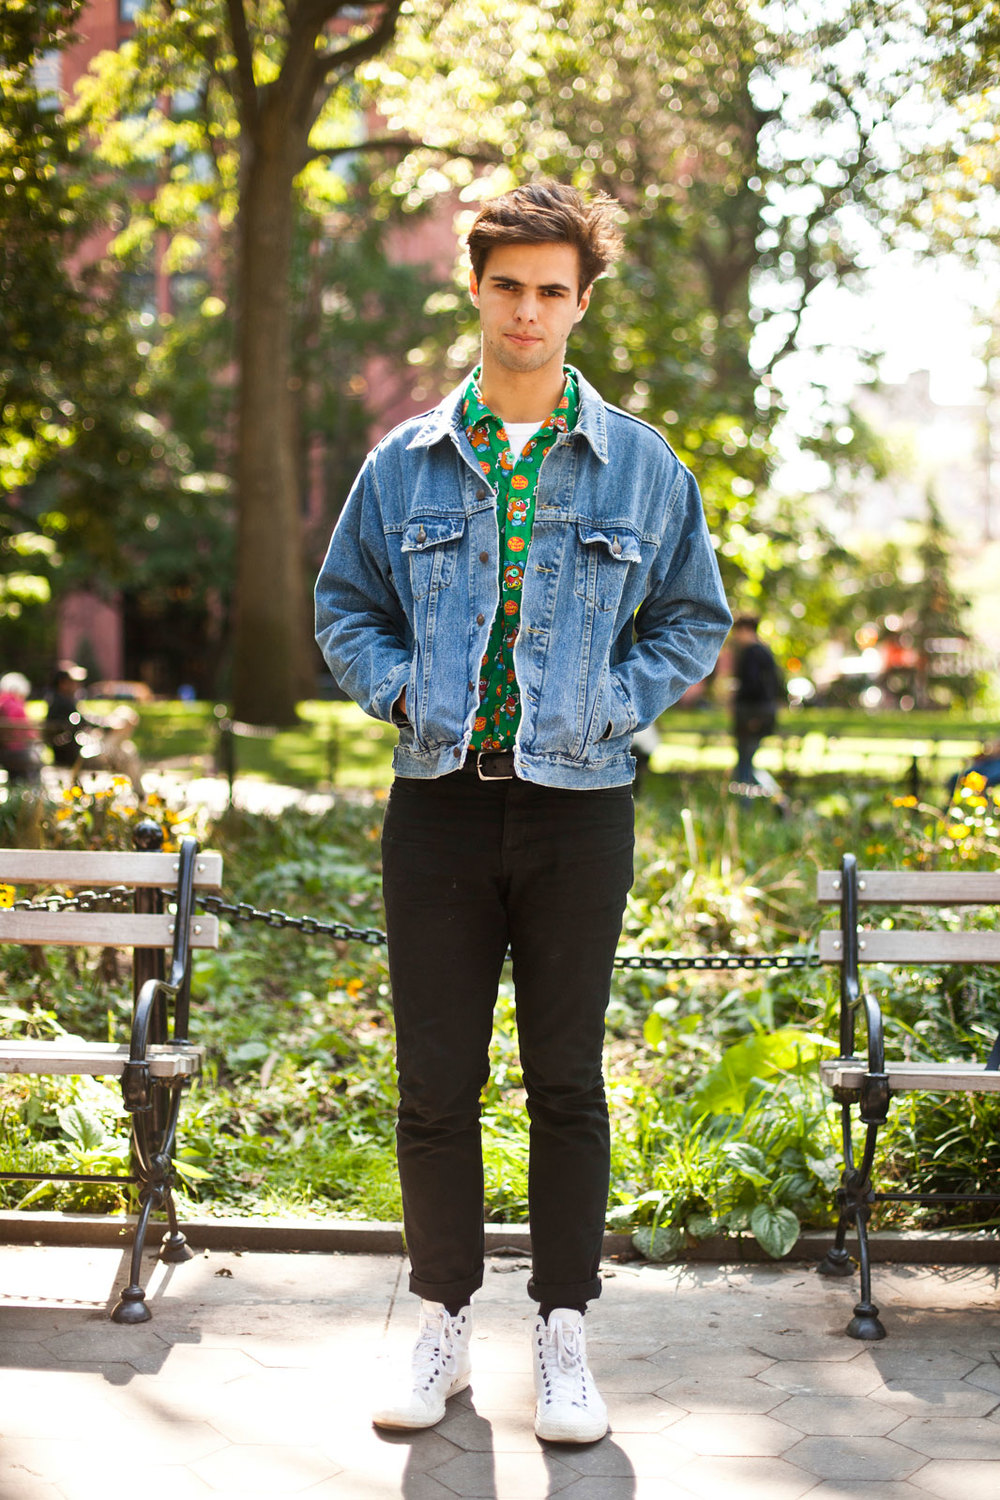 William Kammler from NYU Vintage shirt and jacket, Saturdays Surf NYC pants, and Converse sneakers.